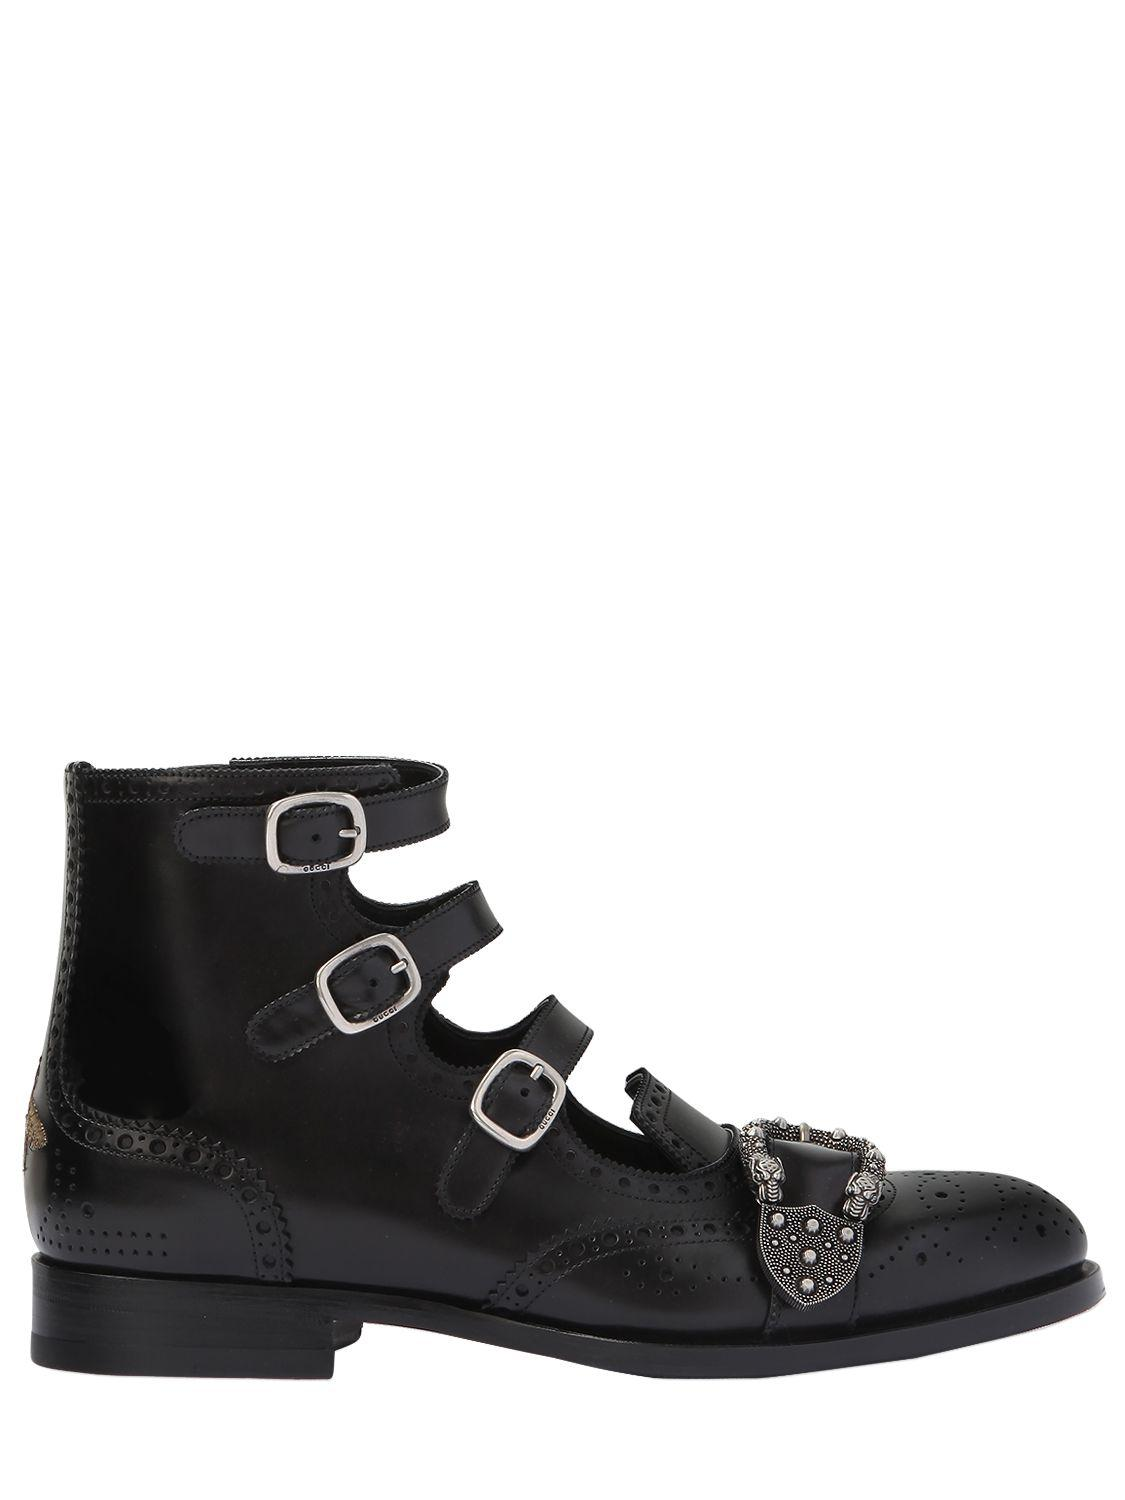 fb8ff97da74347 Lyst - Gucci Queercore Leather Gladiator Boots in Black for Men